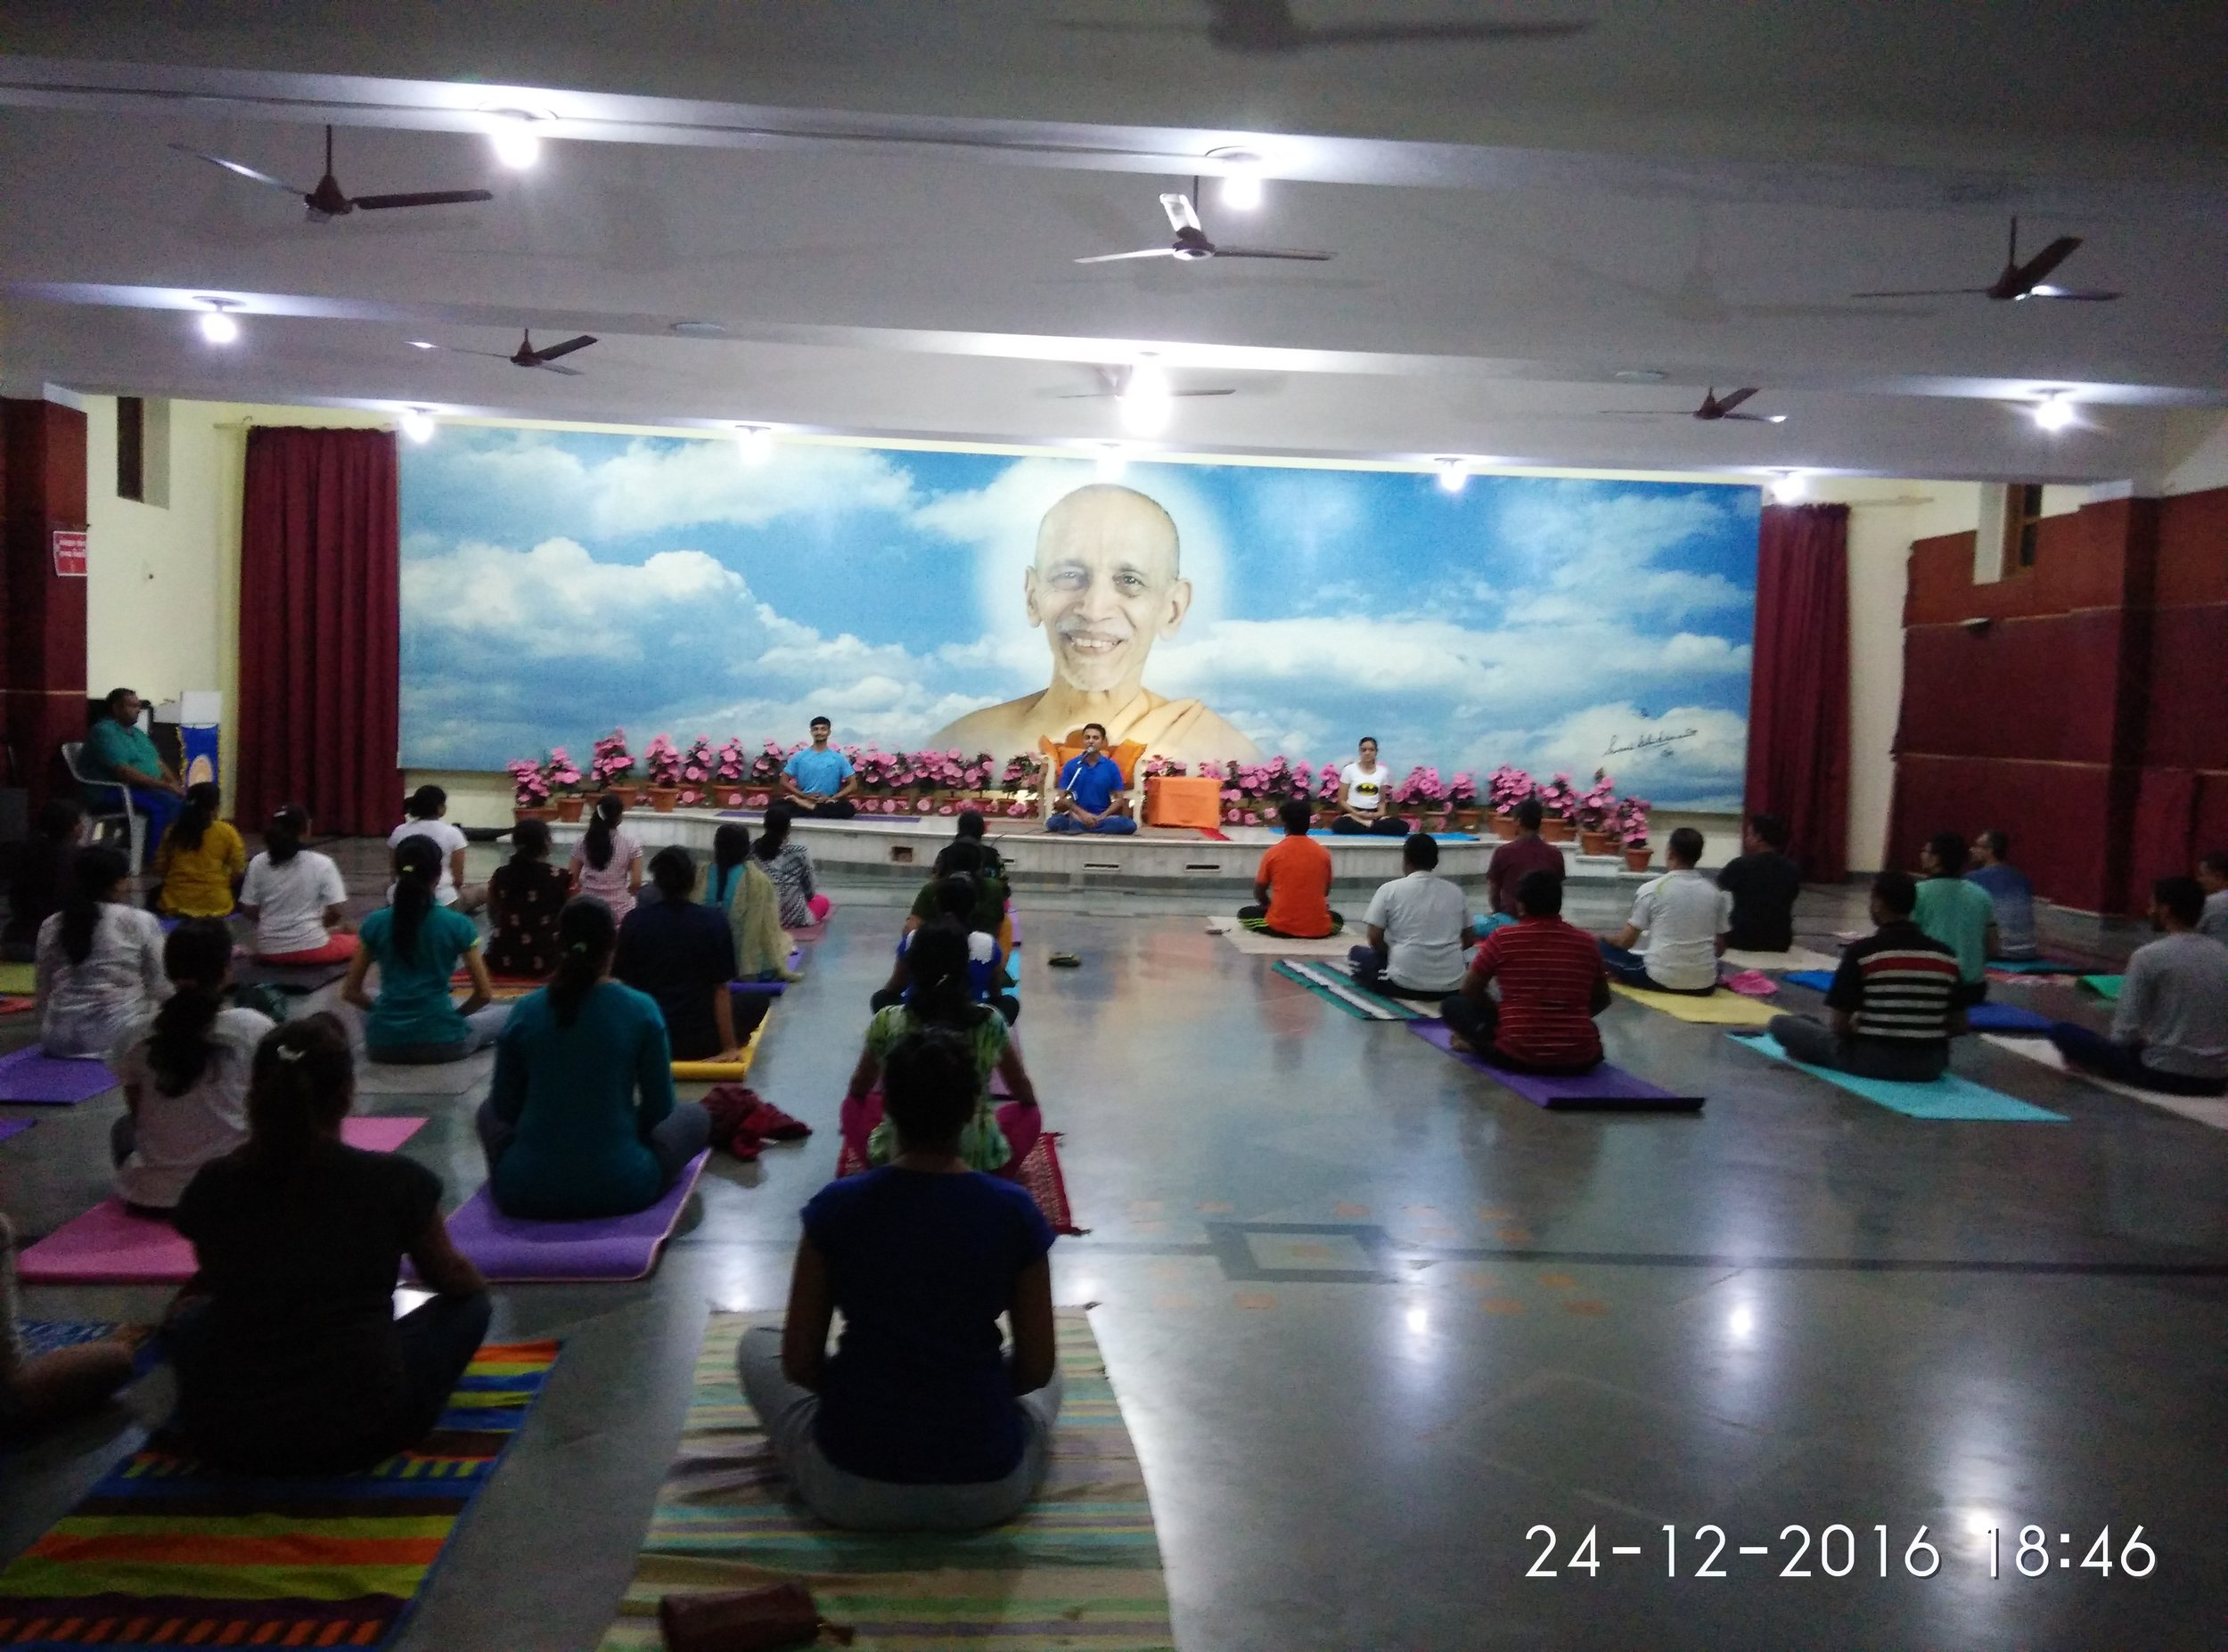 Meditation in Beginners' batch in the feet of H.H. Shri Swami Chidananda, at Dhyan khand, Sivananda Ashram, Dec 2016